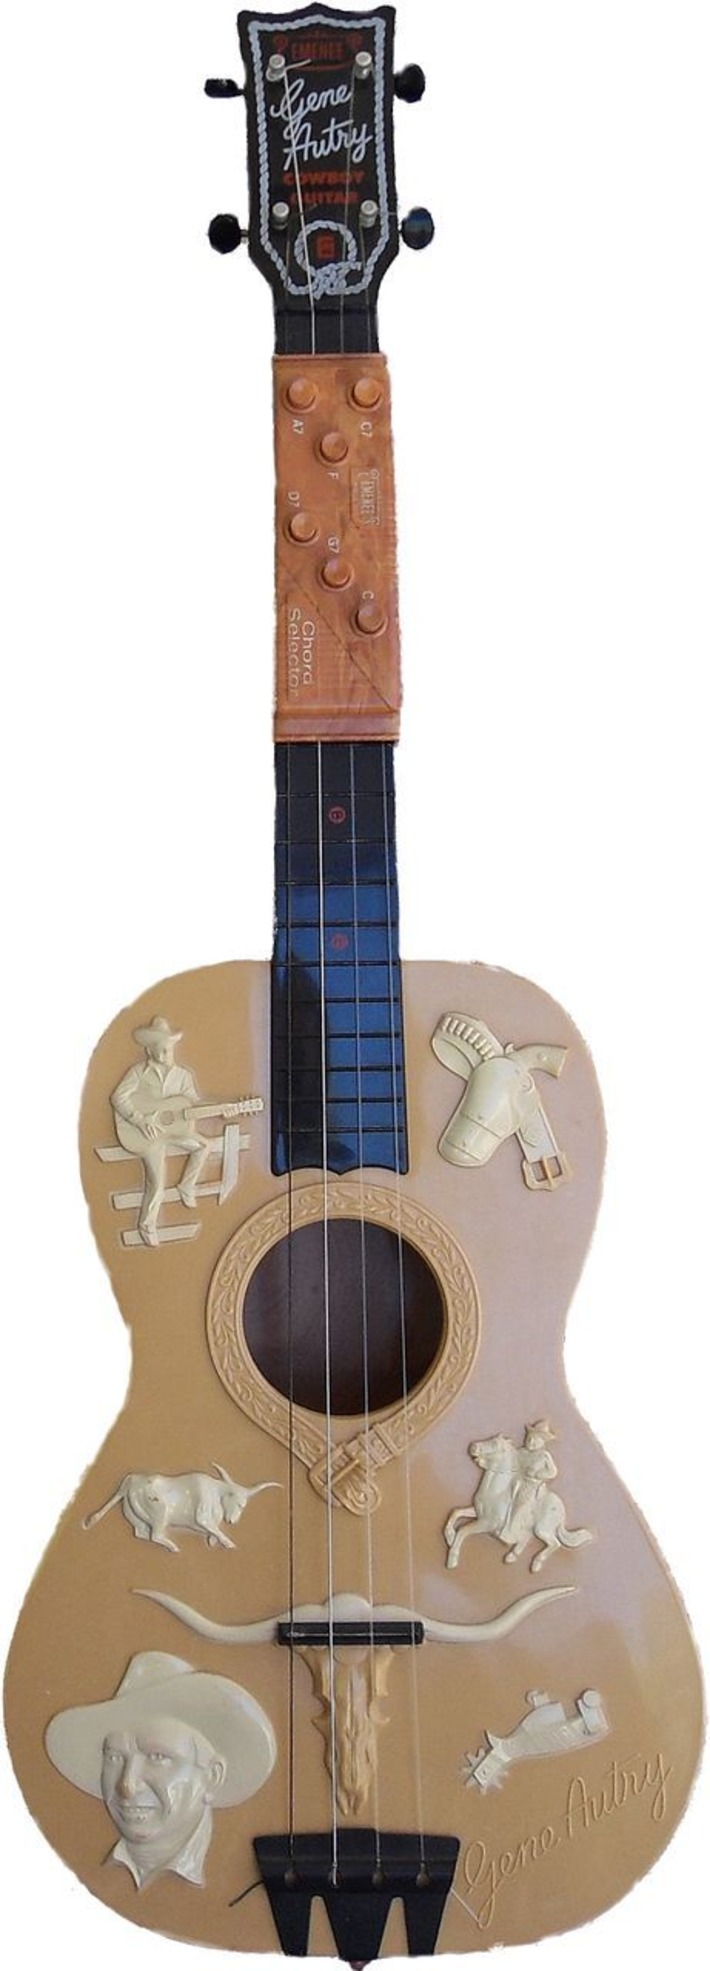 1955 Emenee Gene Autry Cowboy Guitar w/Chord Player | Antiques & Vintage Collectibles | Scoop.it